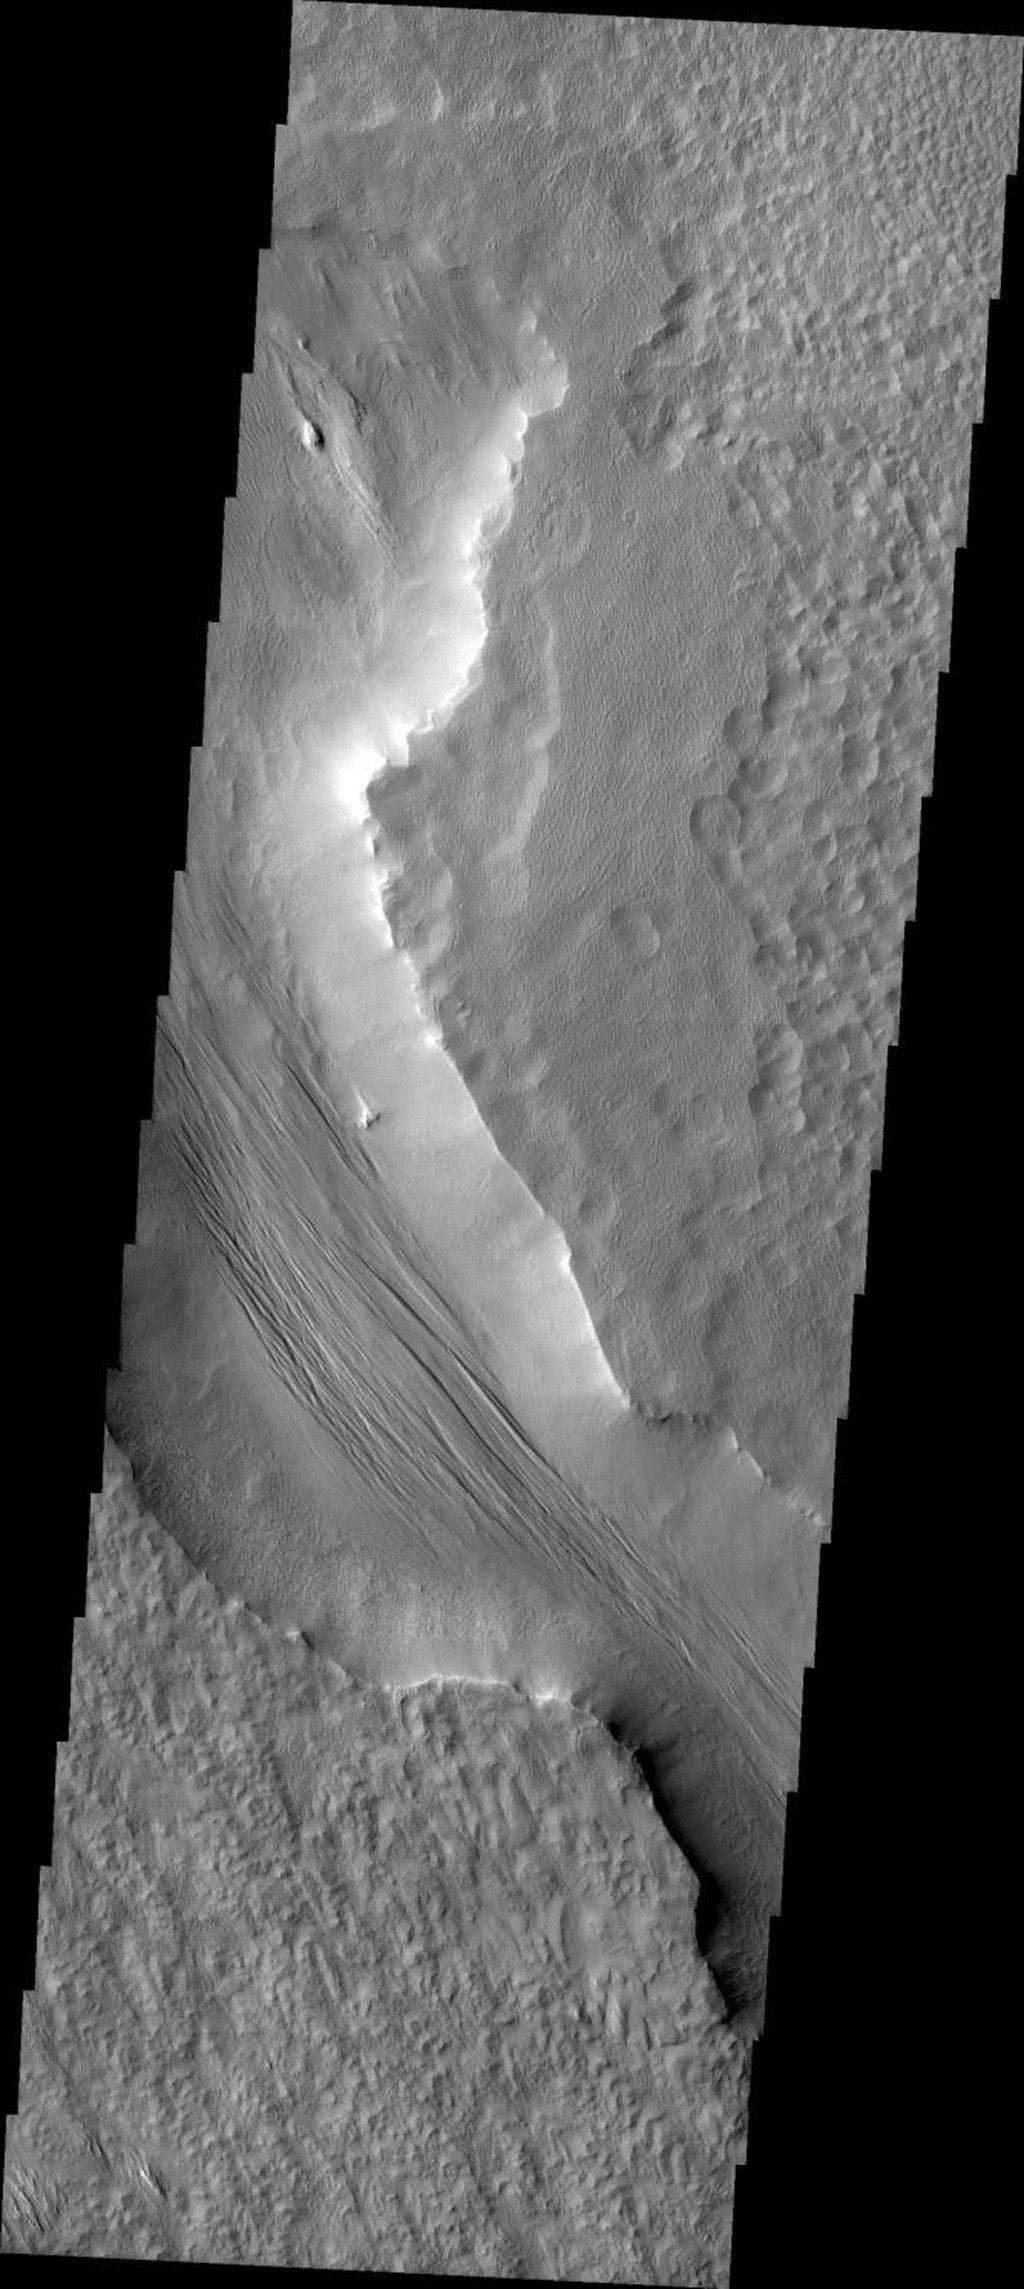 This image released on July 17, 2004 fromNASA's 2001 Mars Odyssey shows that eons of atmospheric dust storm activity has left its mark on the surface of Mars. Yardangs form in channel floor deposits.